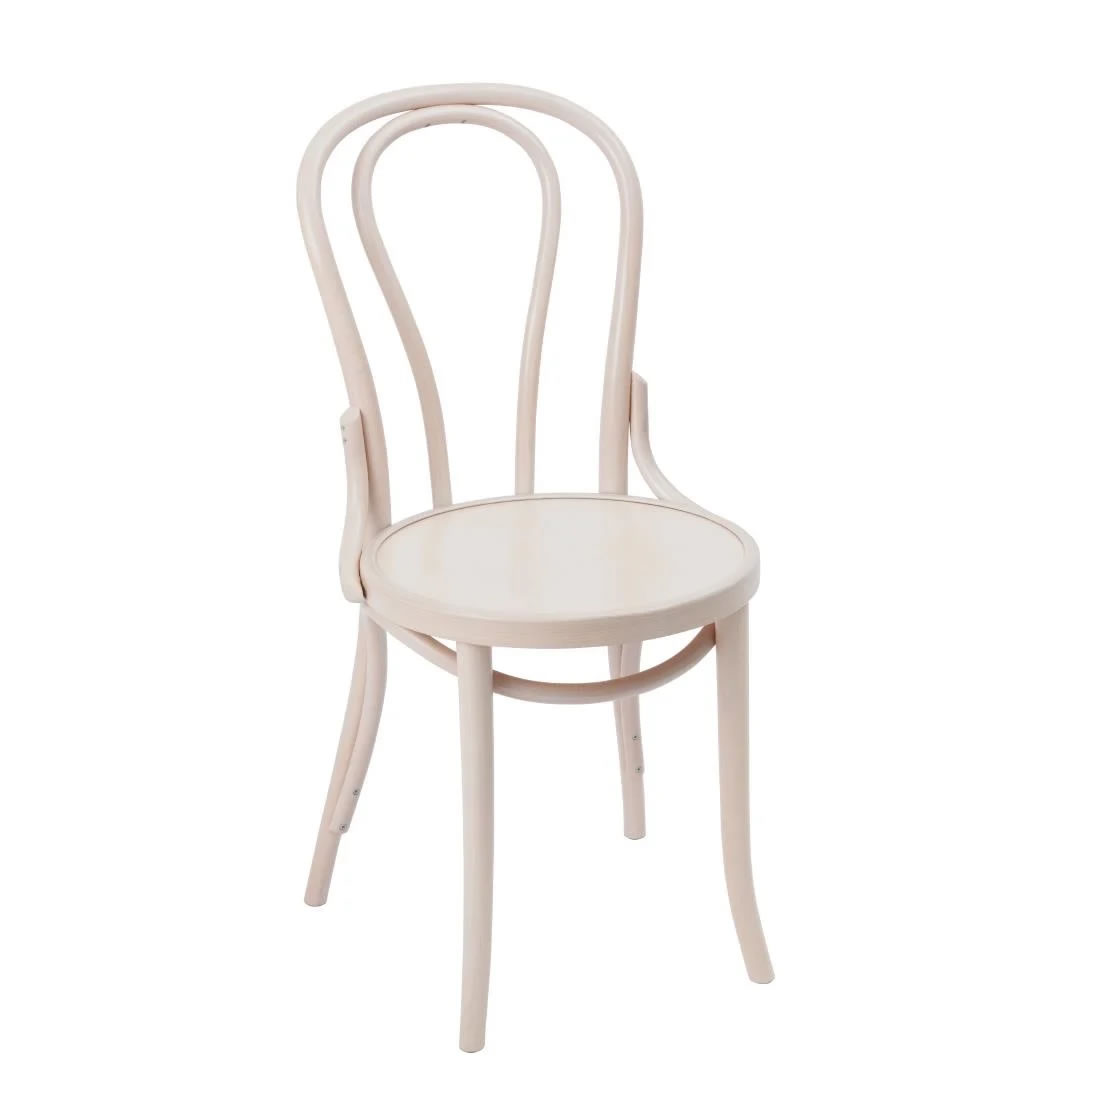 Apone Pair Kitchen Dining Chair White Bentwood Style Fully Assembled